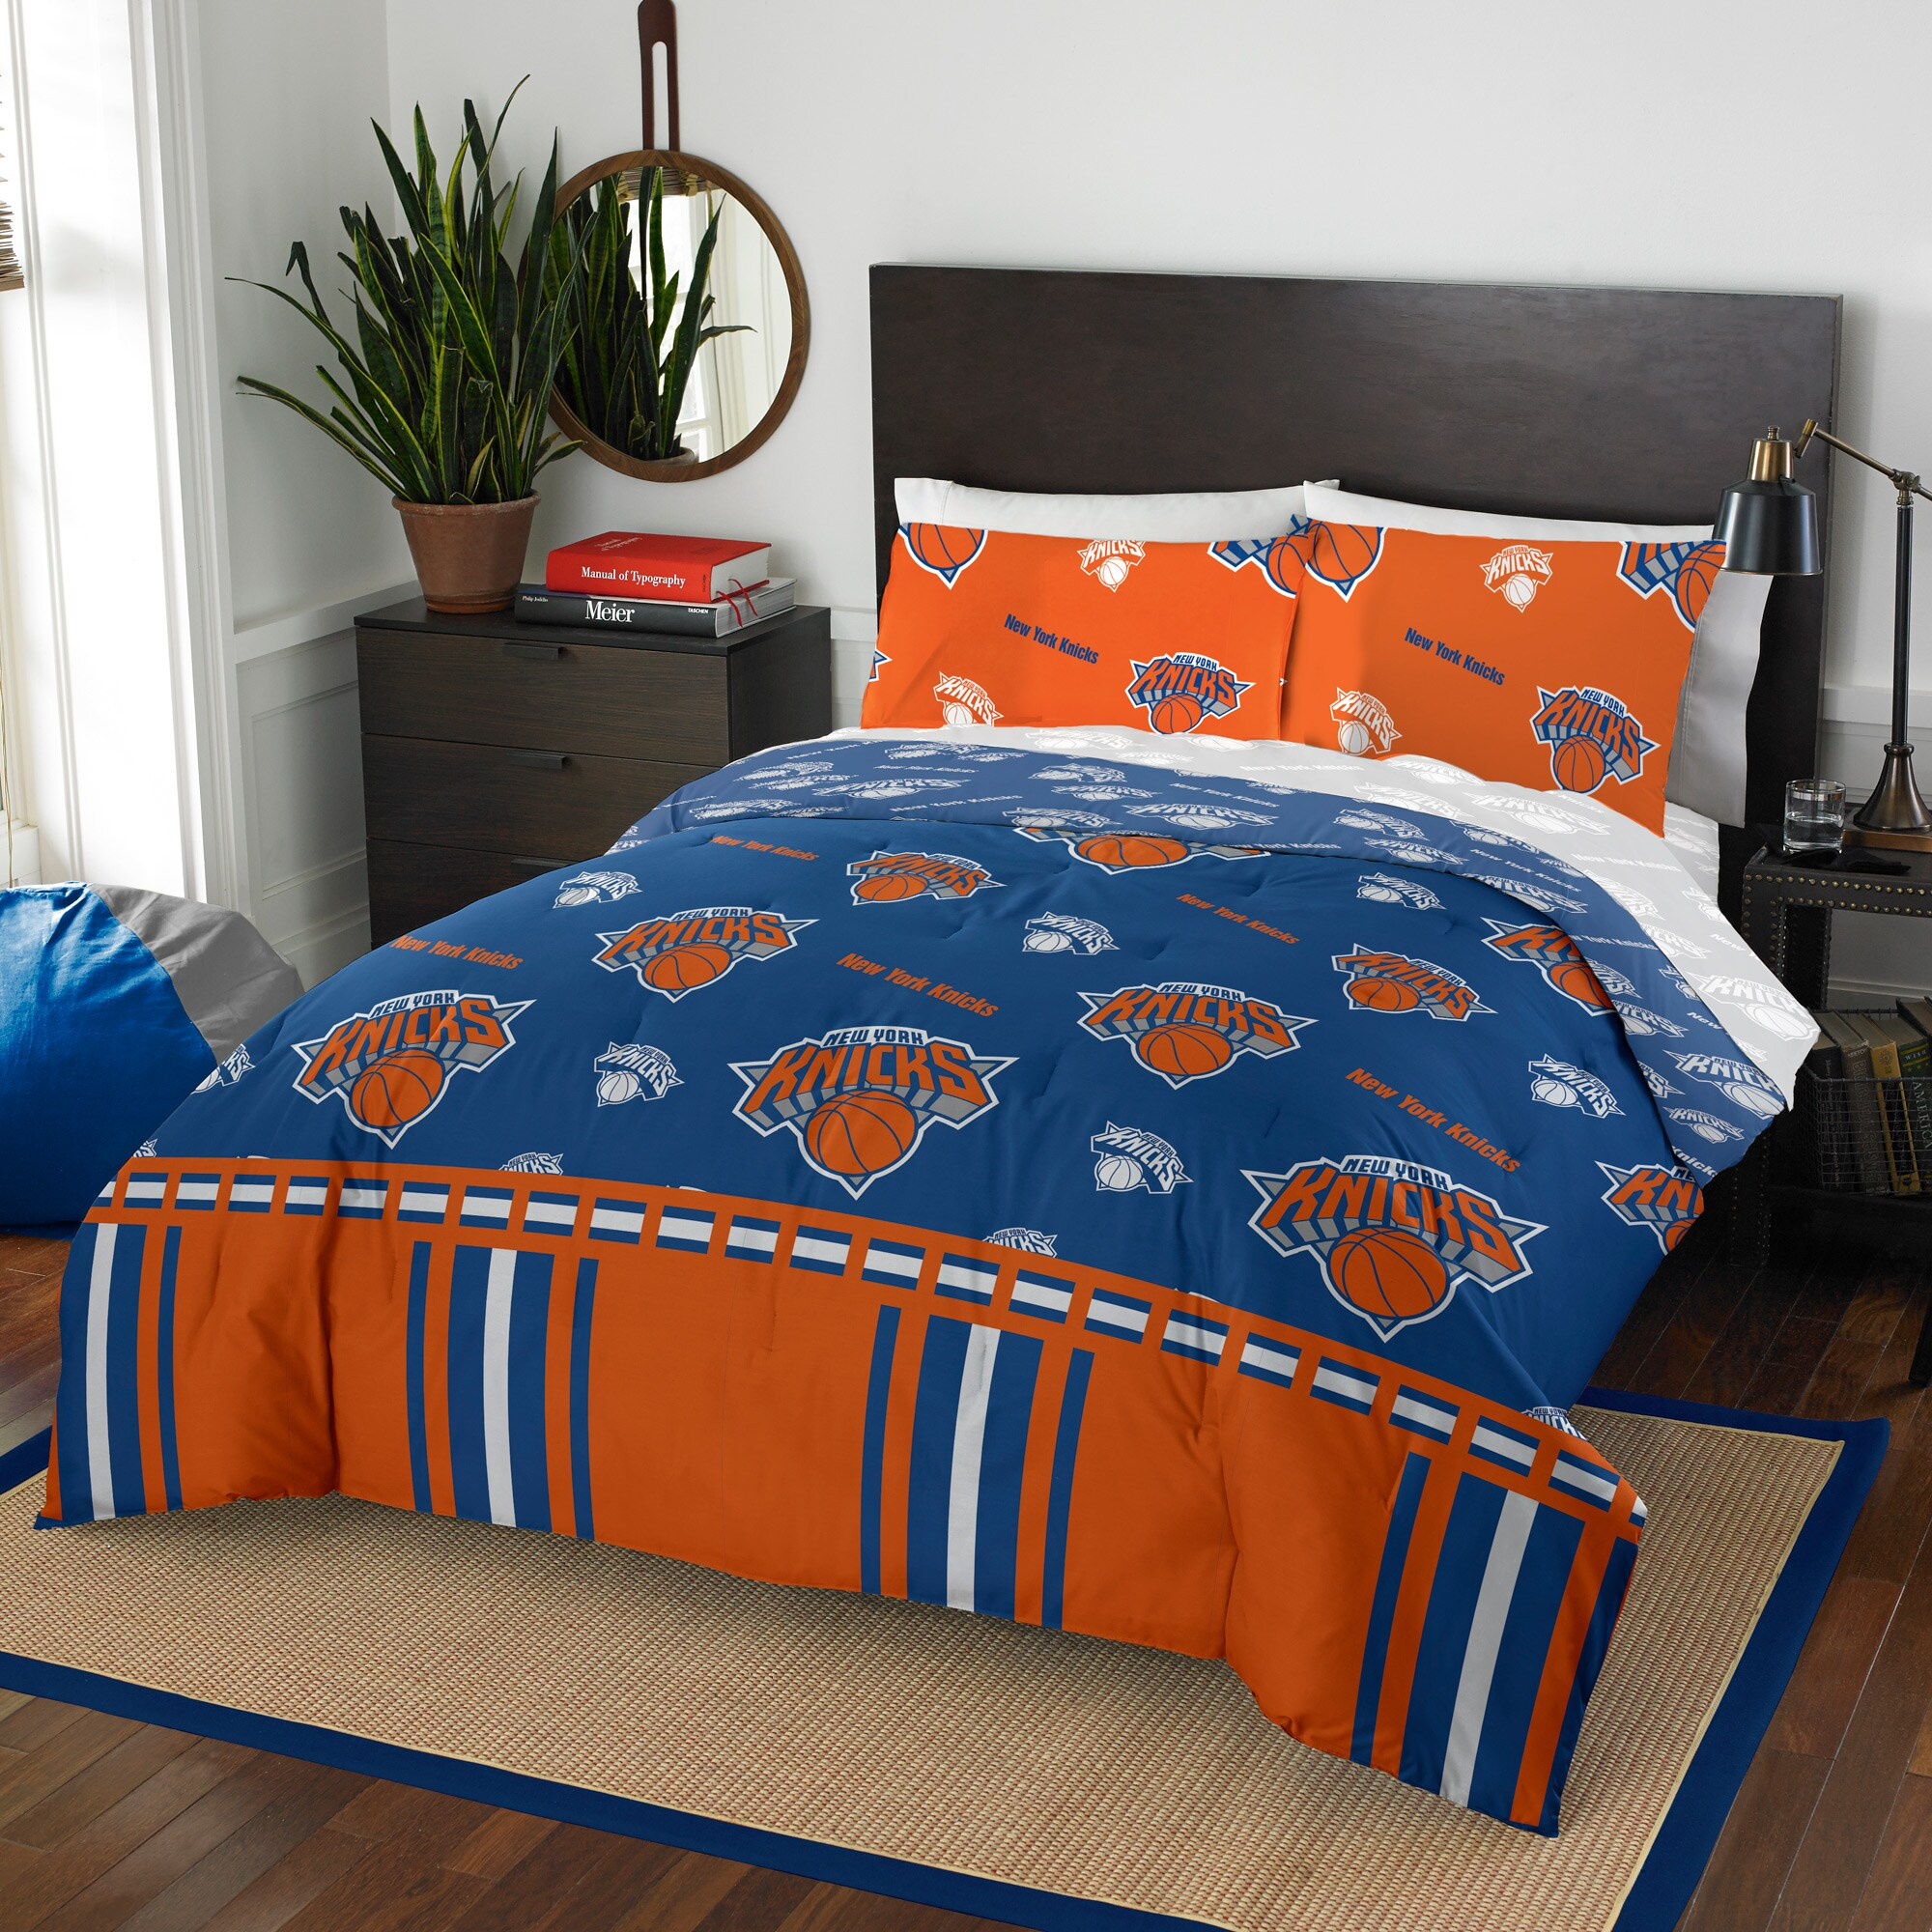 New York Knicks The Northwest Company 5-Piece Queen Bed in a Bag Set